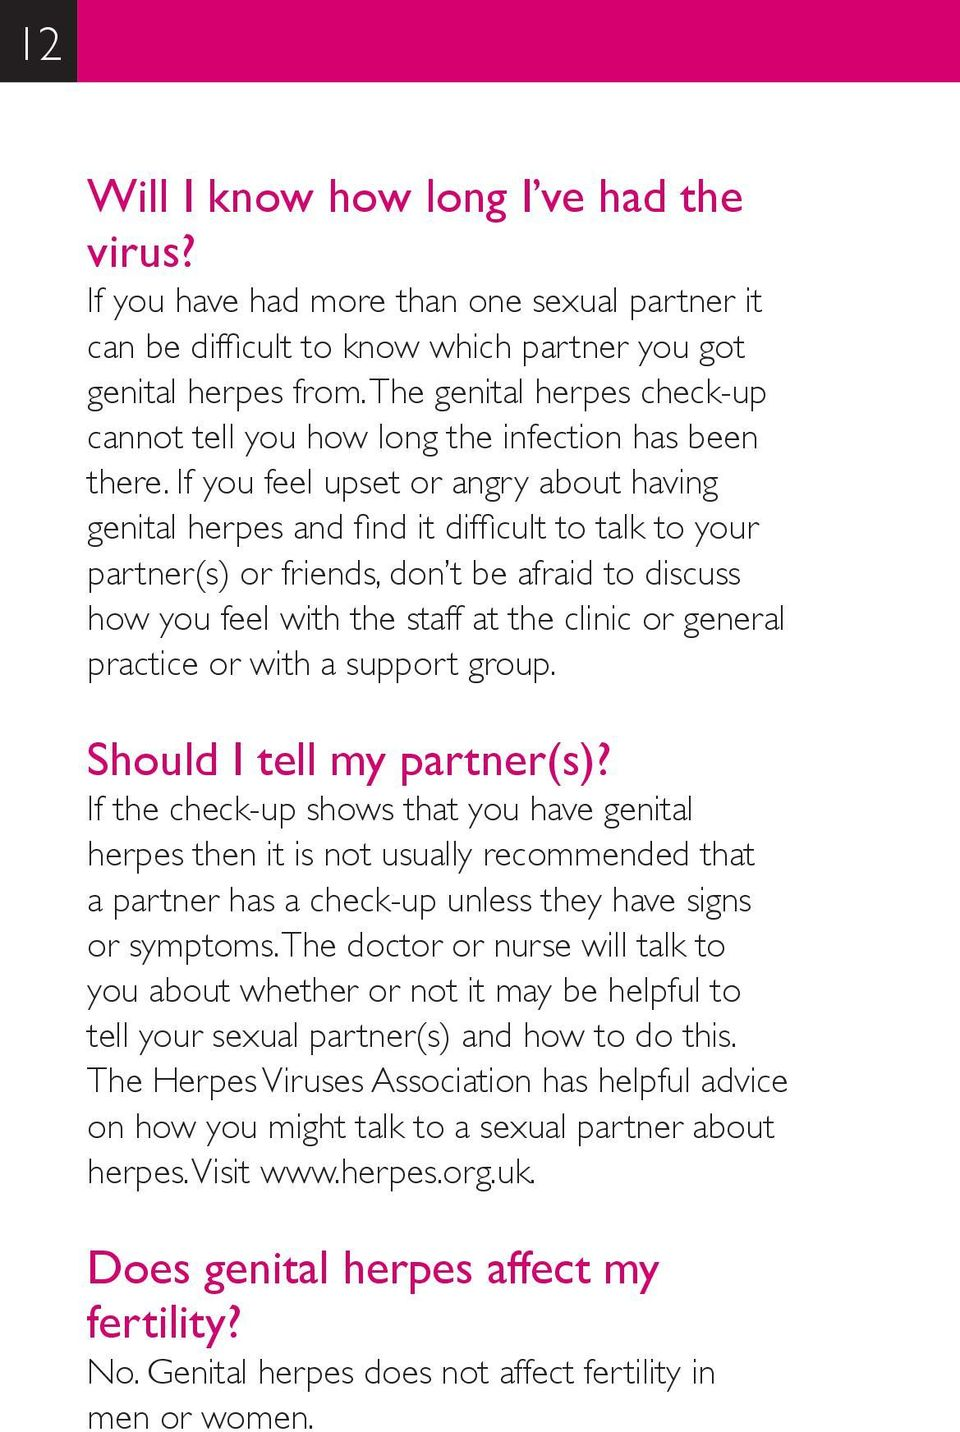 If you feel upset or angry about having genital herpes and find it difficult to talk to your partner(s) or friends, don t be afraid to discuss how you feel with the staff at the clinic or general